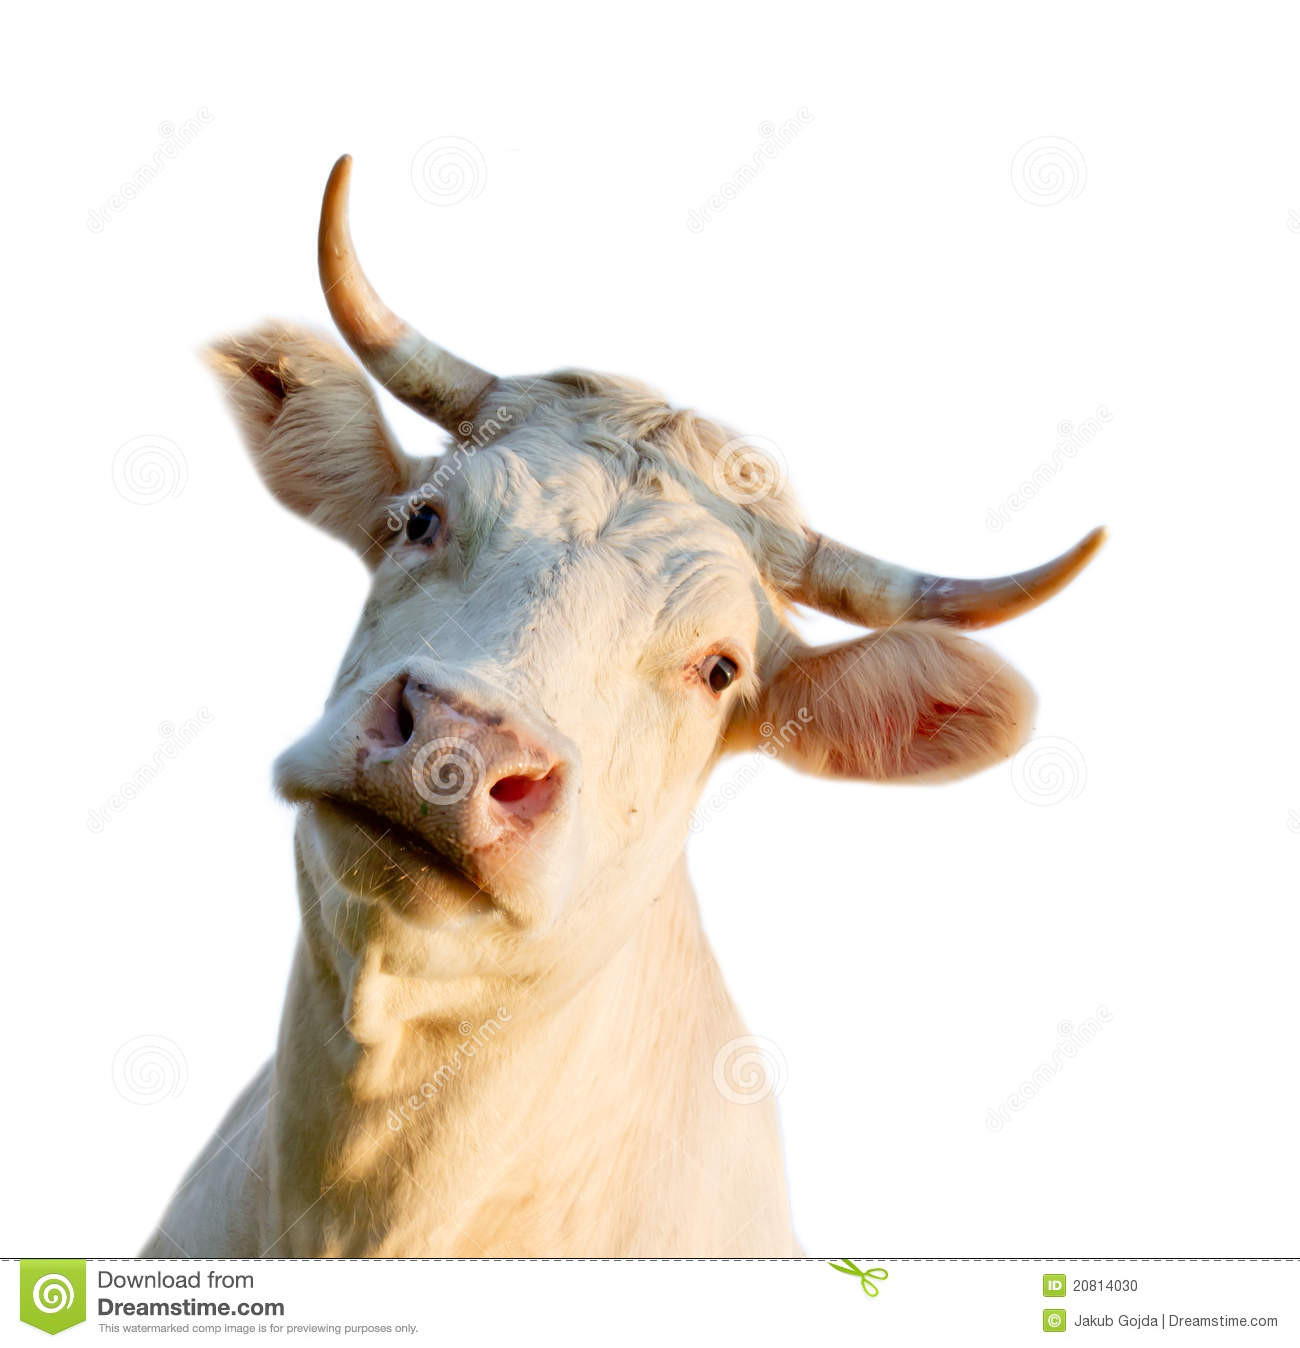 Cow Head Stock Photo - Image: 20814030